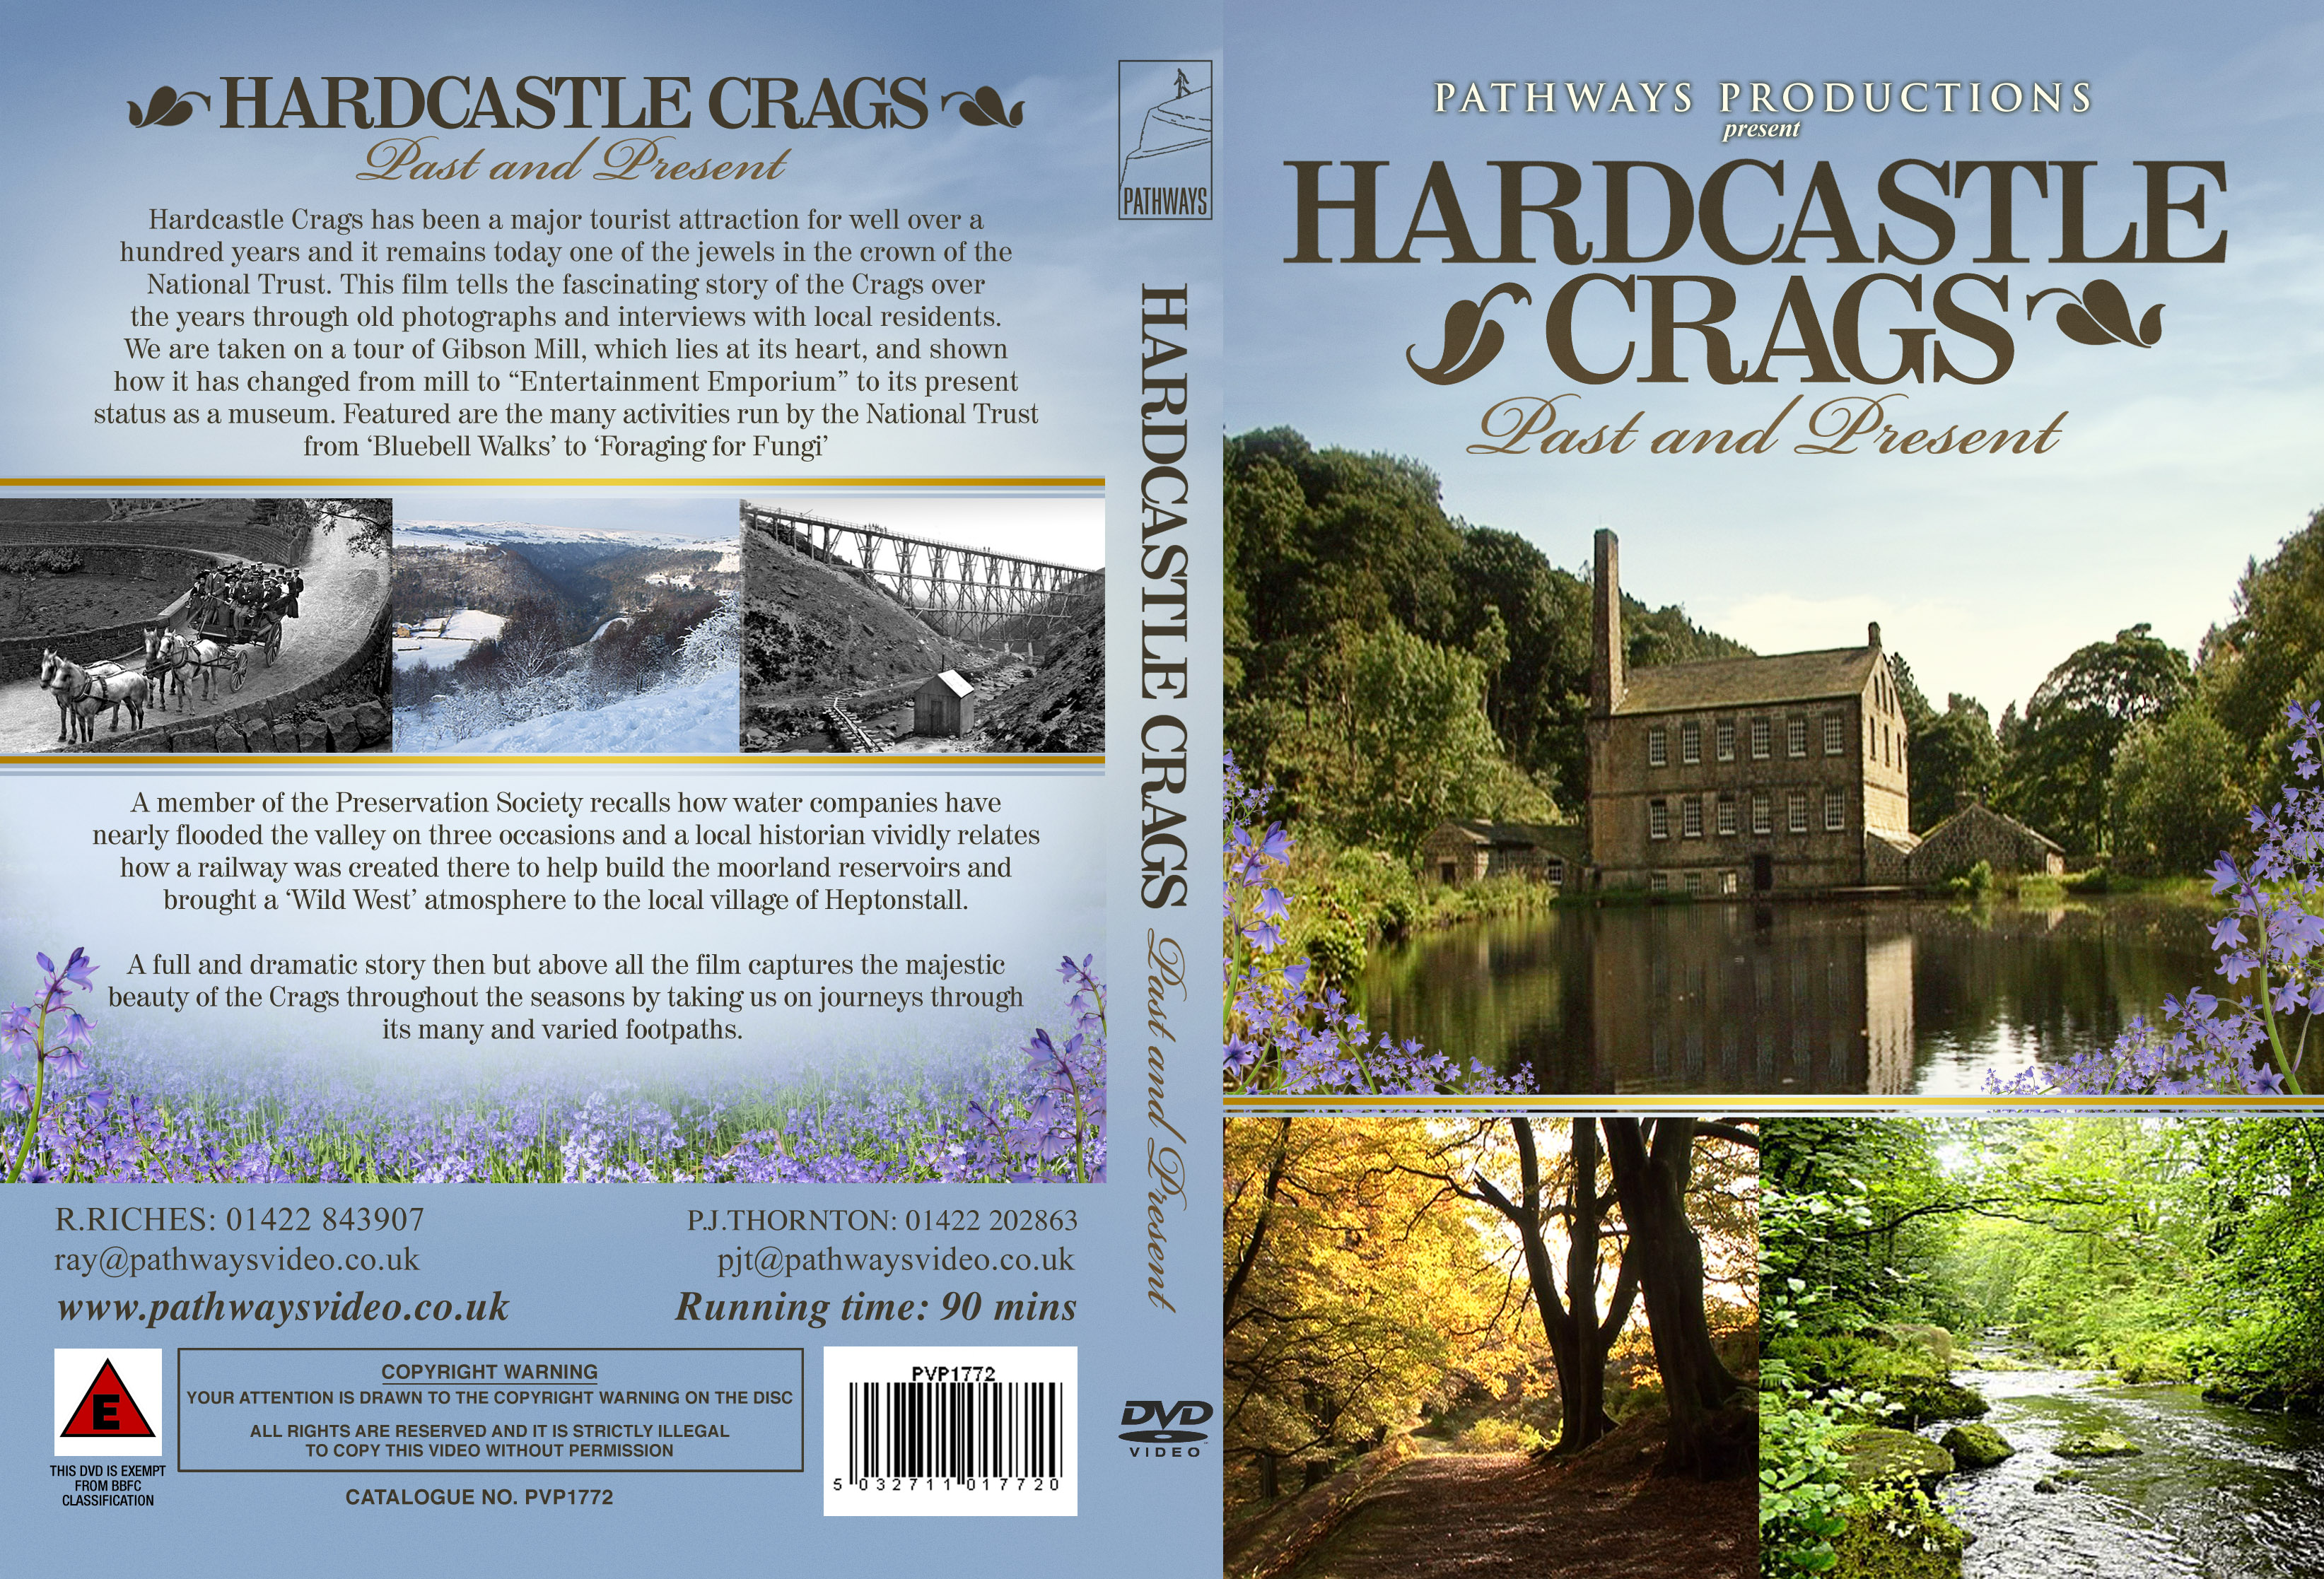 Hardcastle Crags by Pathways Productions